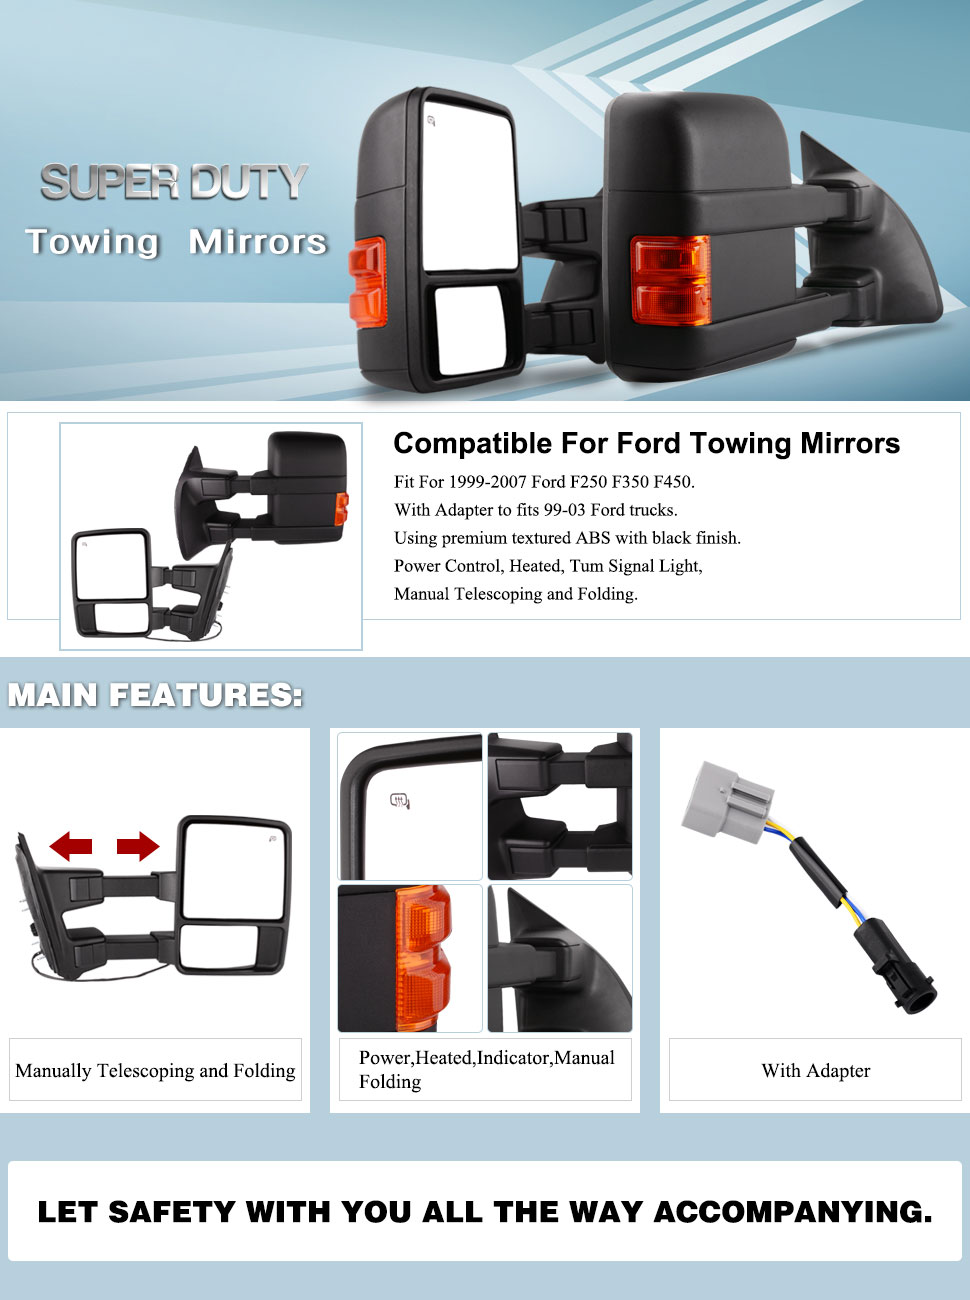 Wondrous Amazon Com Yitamotor Towing Mirrors Compatible For Ford 1999 2007 Wiring Cloud Timewinrebemohammedshrineorg